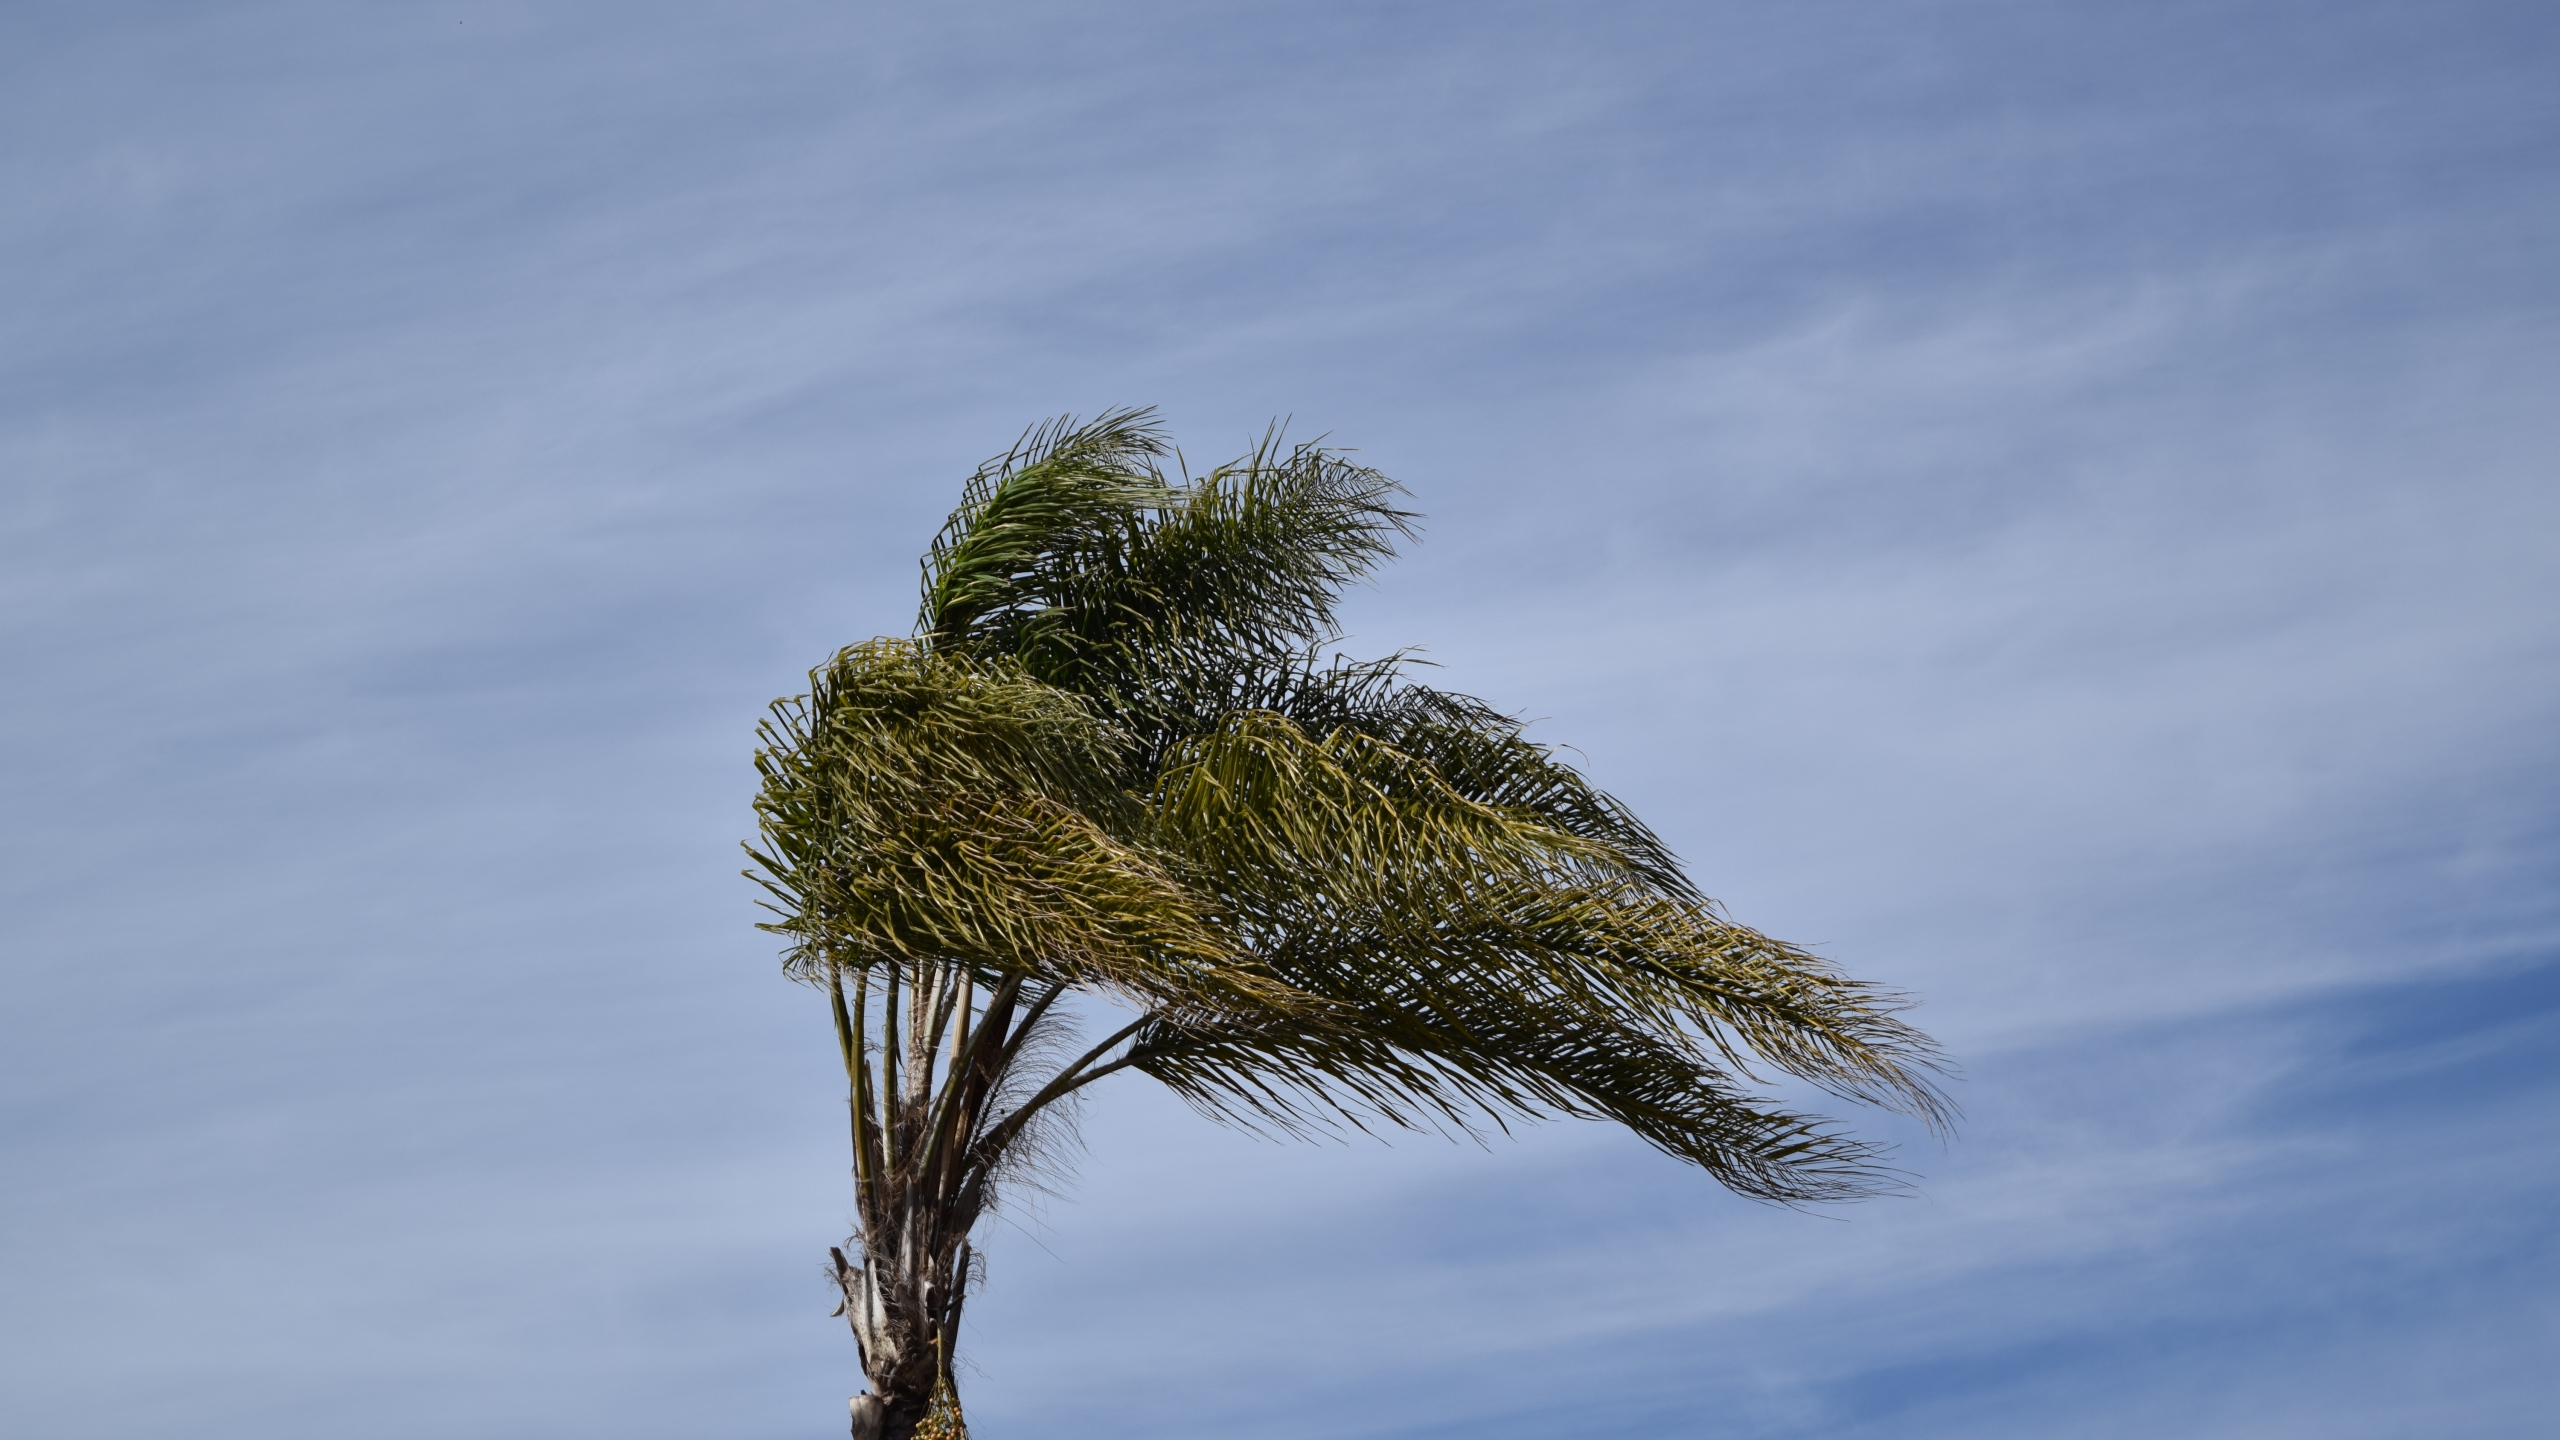 A palm tree sways as wind blows in California. (Credit: Getty Images)